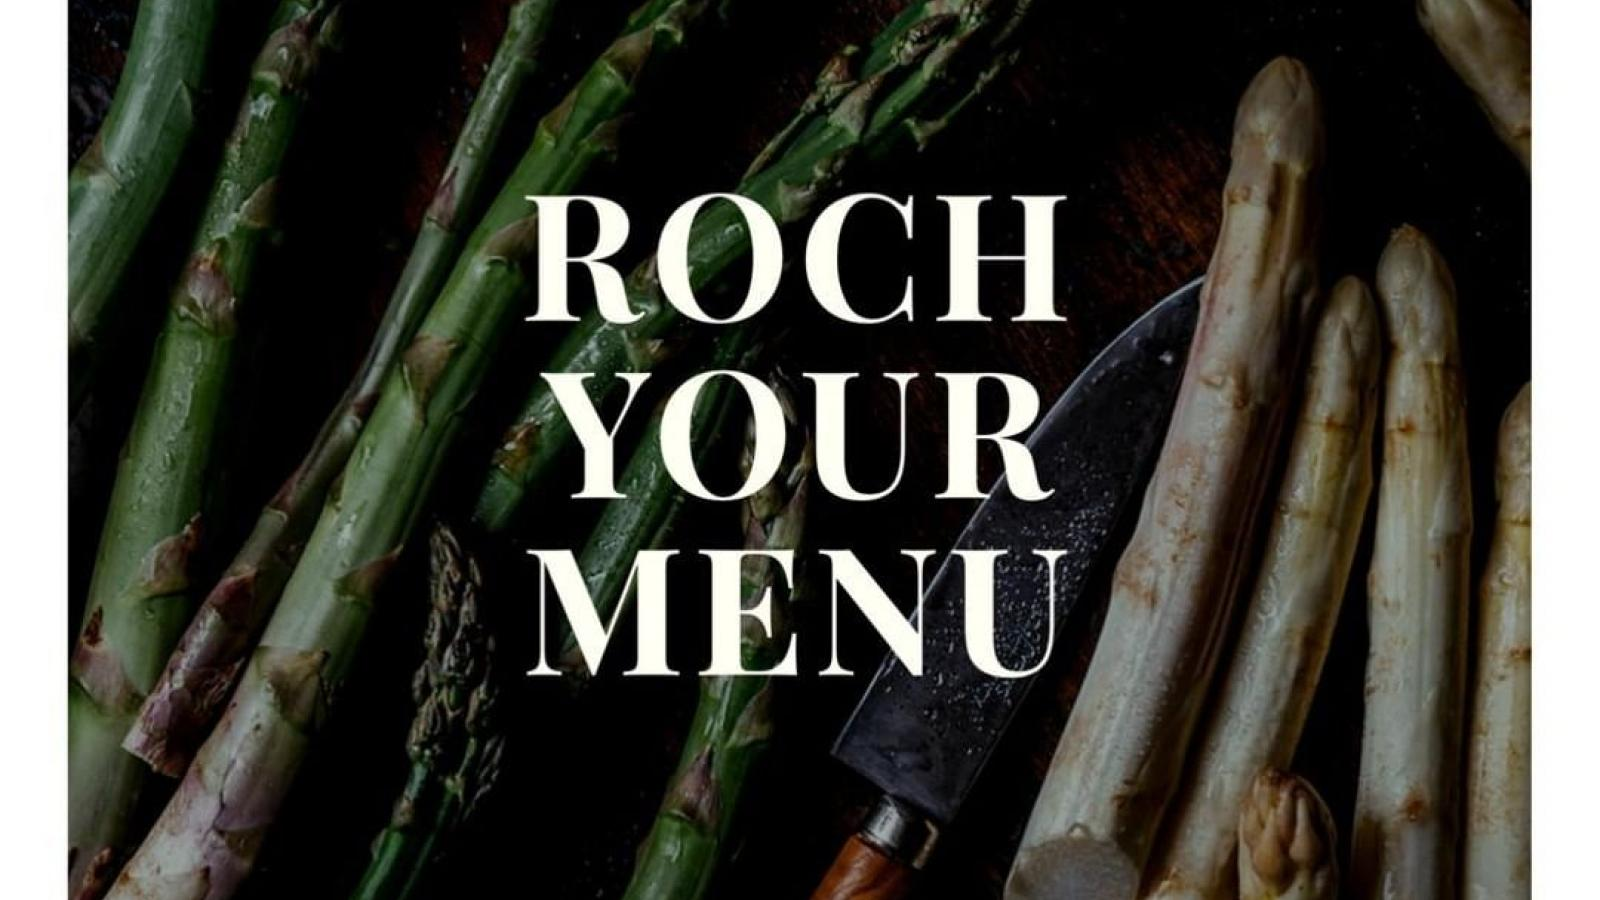 Roch your menu !